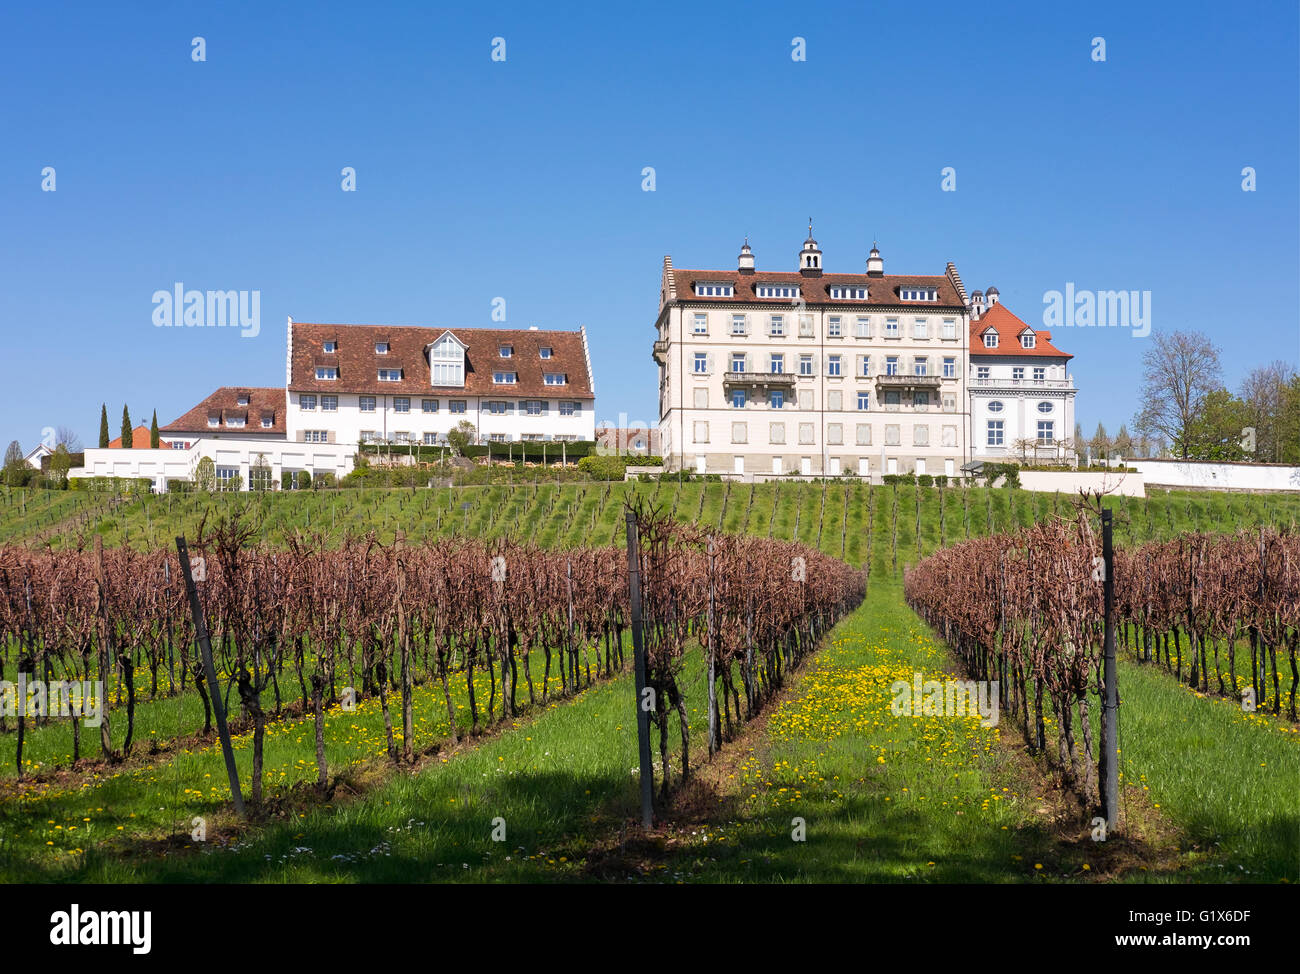 Schloss Kirchberg castle above vineyards, Immenstaad at Lake Constance, Lake Constance district, Swabia, Baden-Württemberg - Stock Image